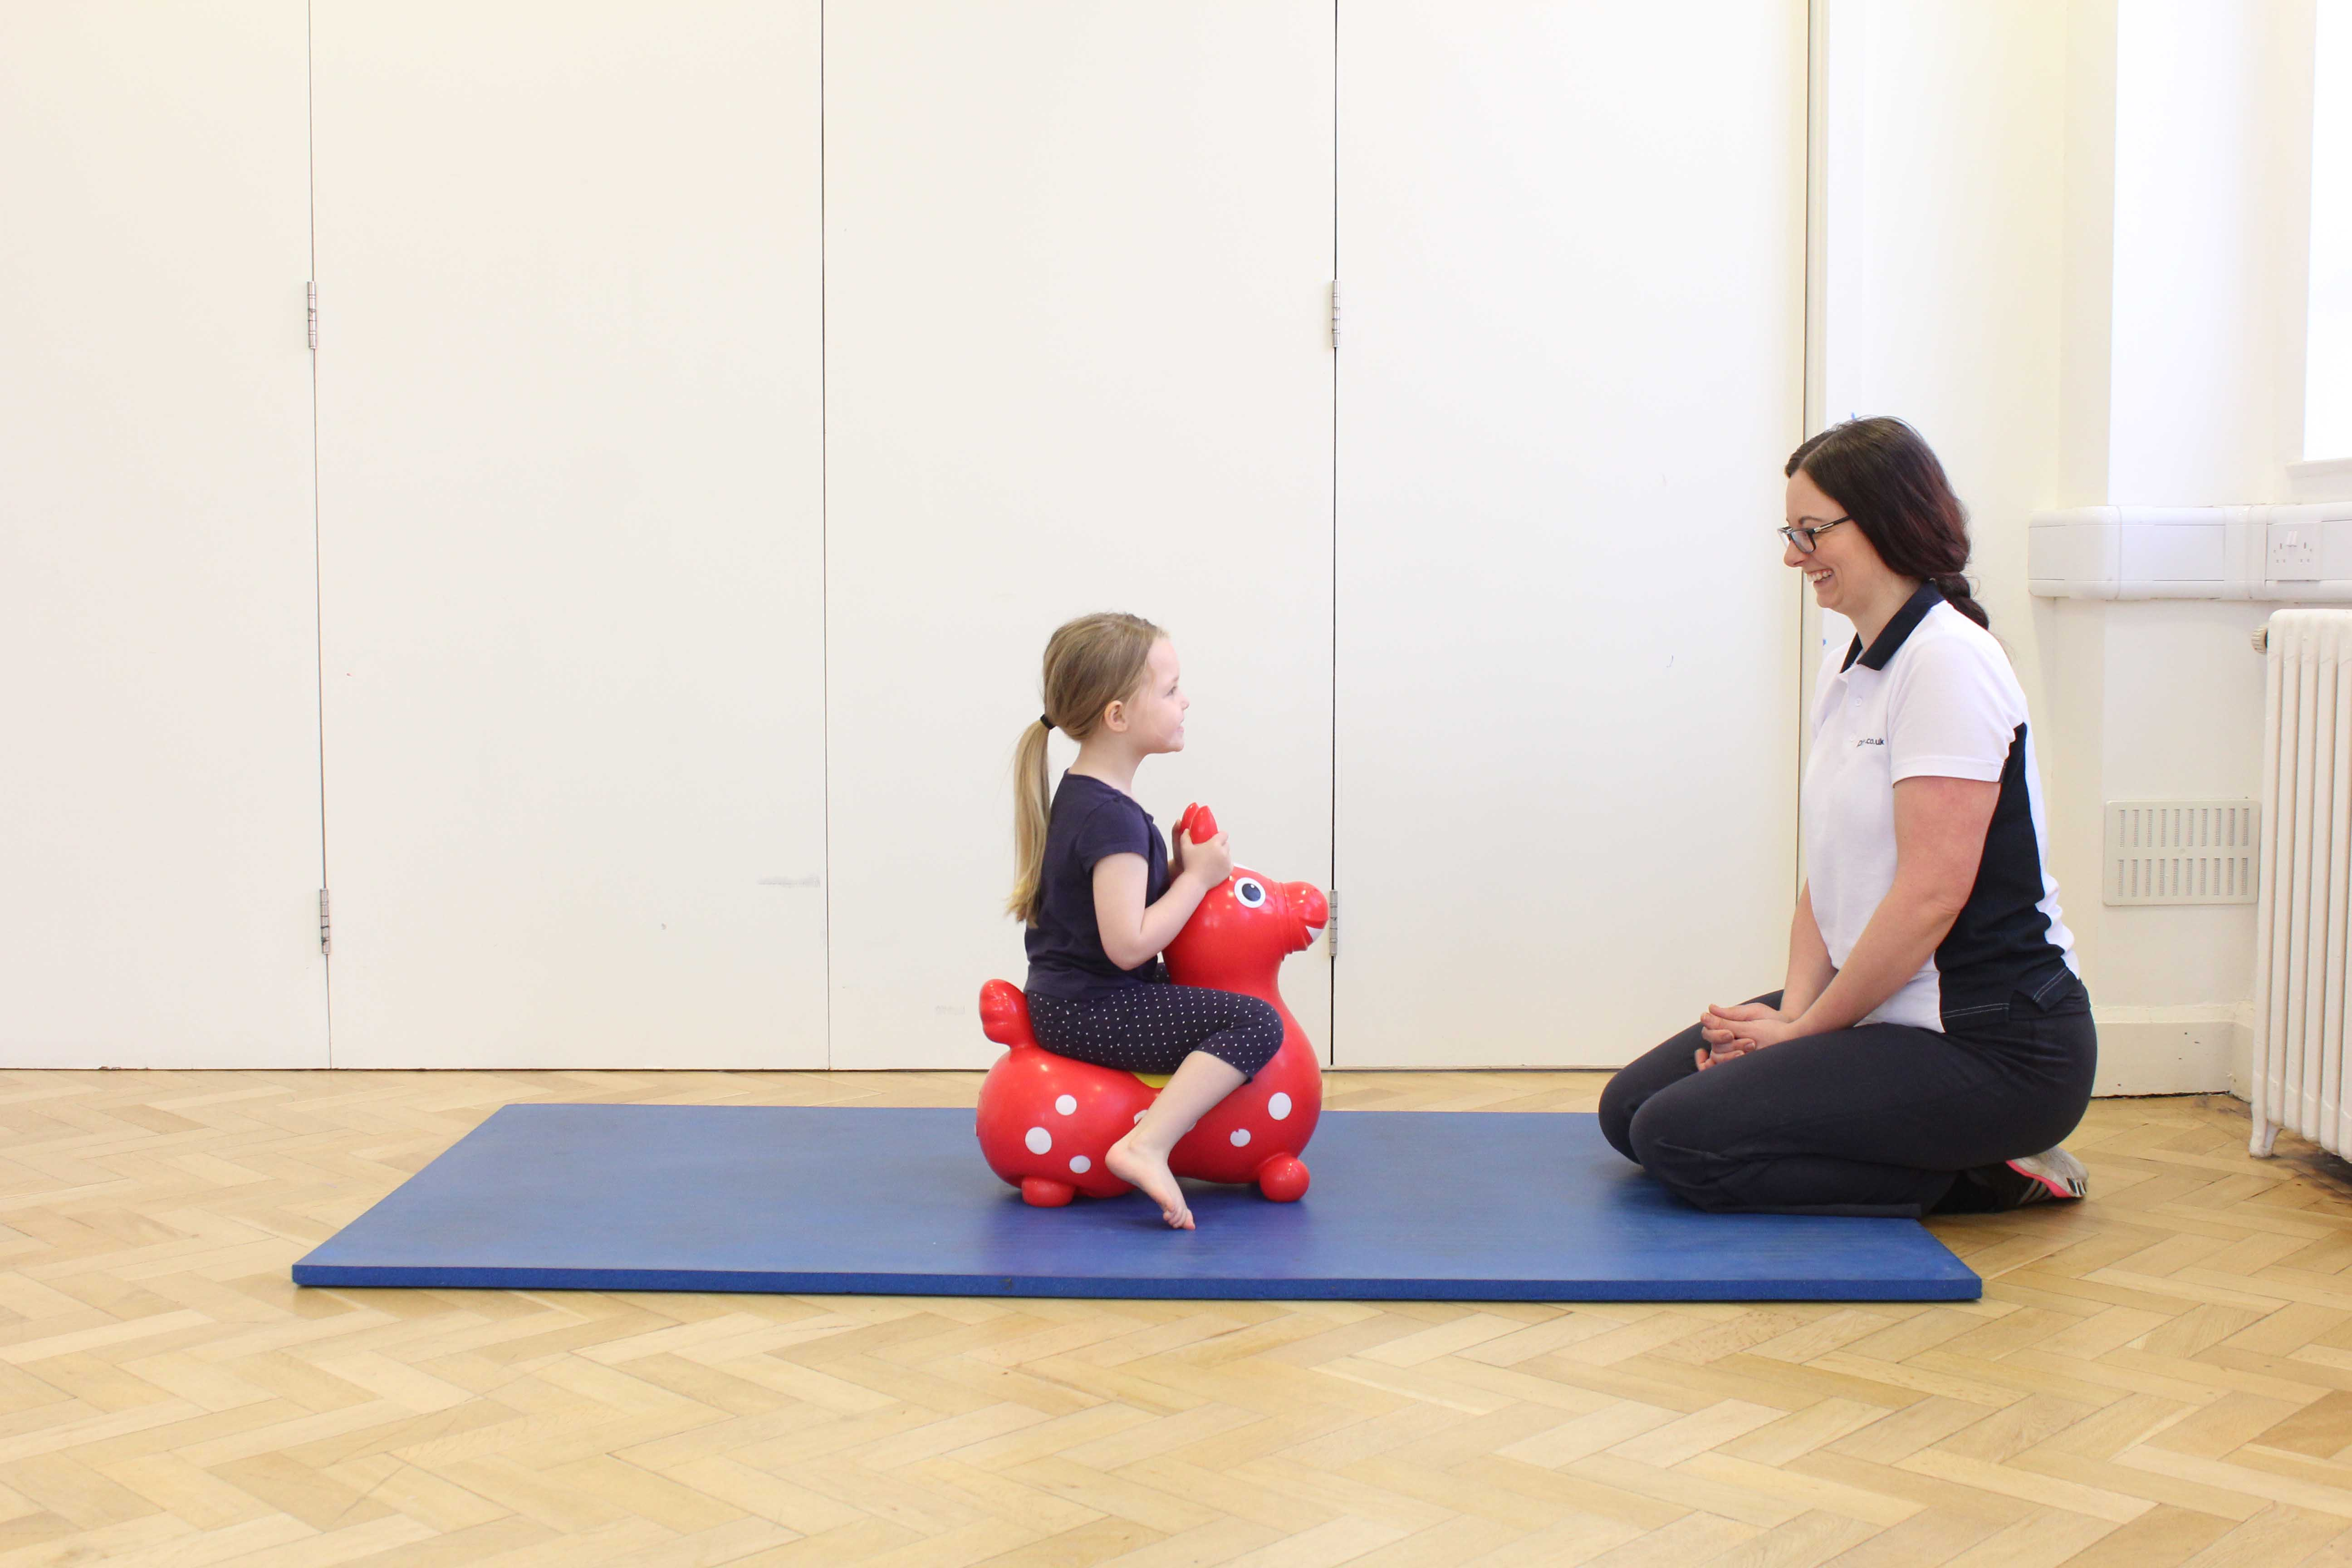 Treatning musculoskeletal conditions through exercises and play.